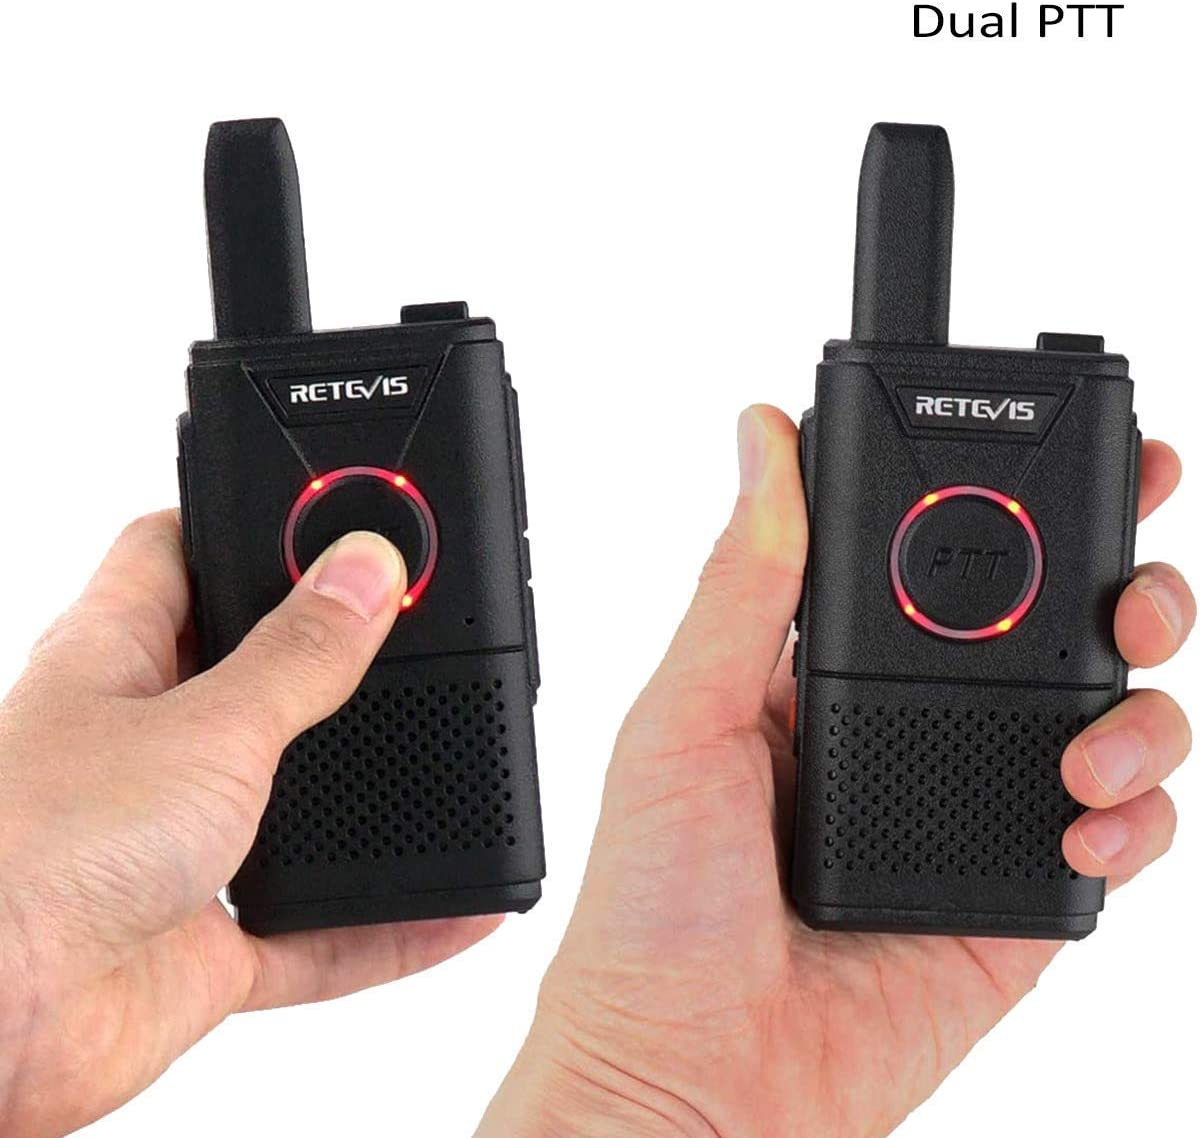 Retevis RT18 Walkie Talkies for Adults Rechargeable,Dual PTT Two Way Radio,Metal Back Clip,with 5-Port USB Charger 5 Pack